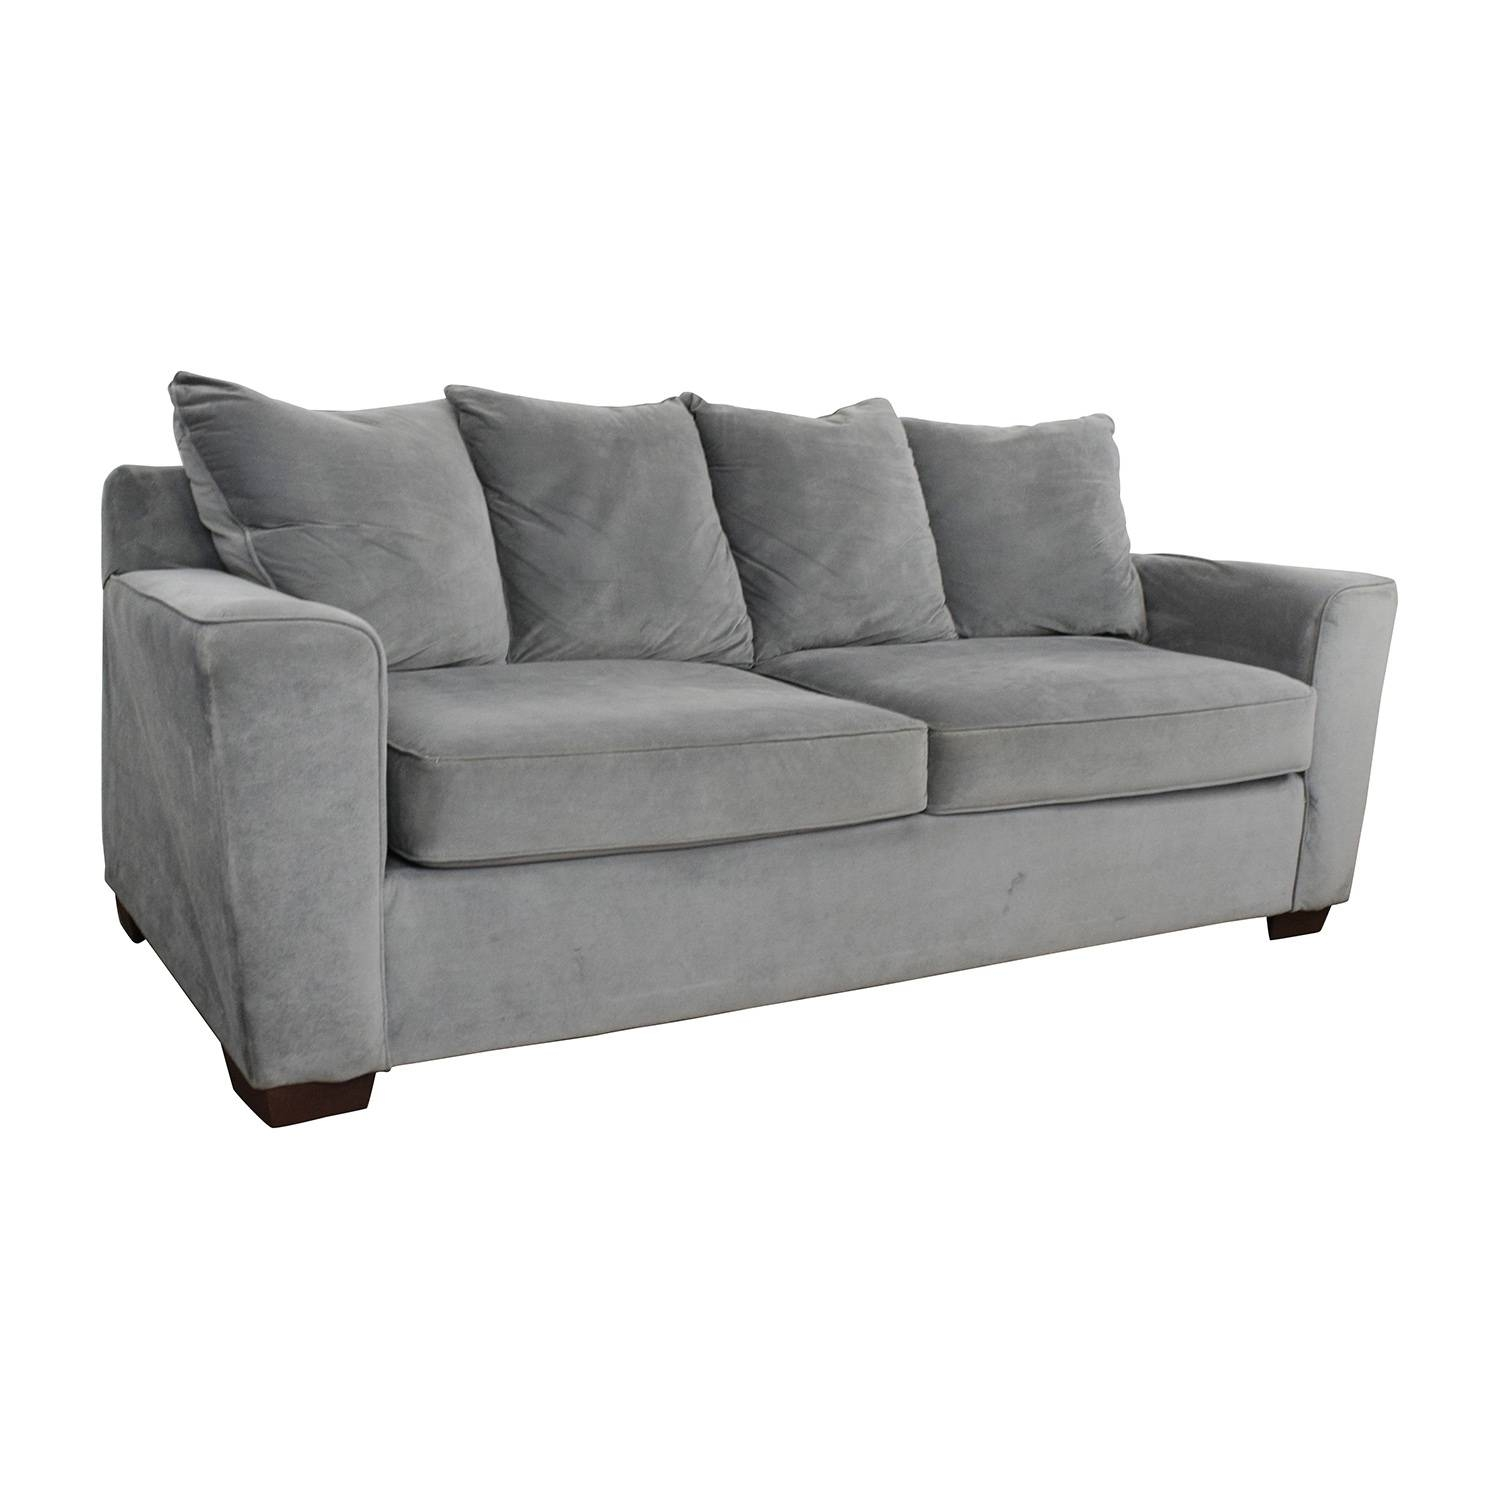 57% Off   Jennifer Convertibles Jennifer Convertibles Grey Couch Pertaining To Jennifer Sofas (Photo 15 of 30)